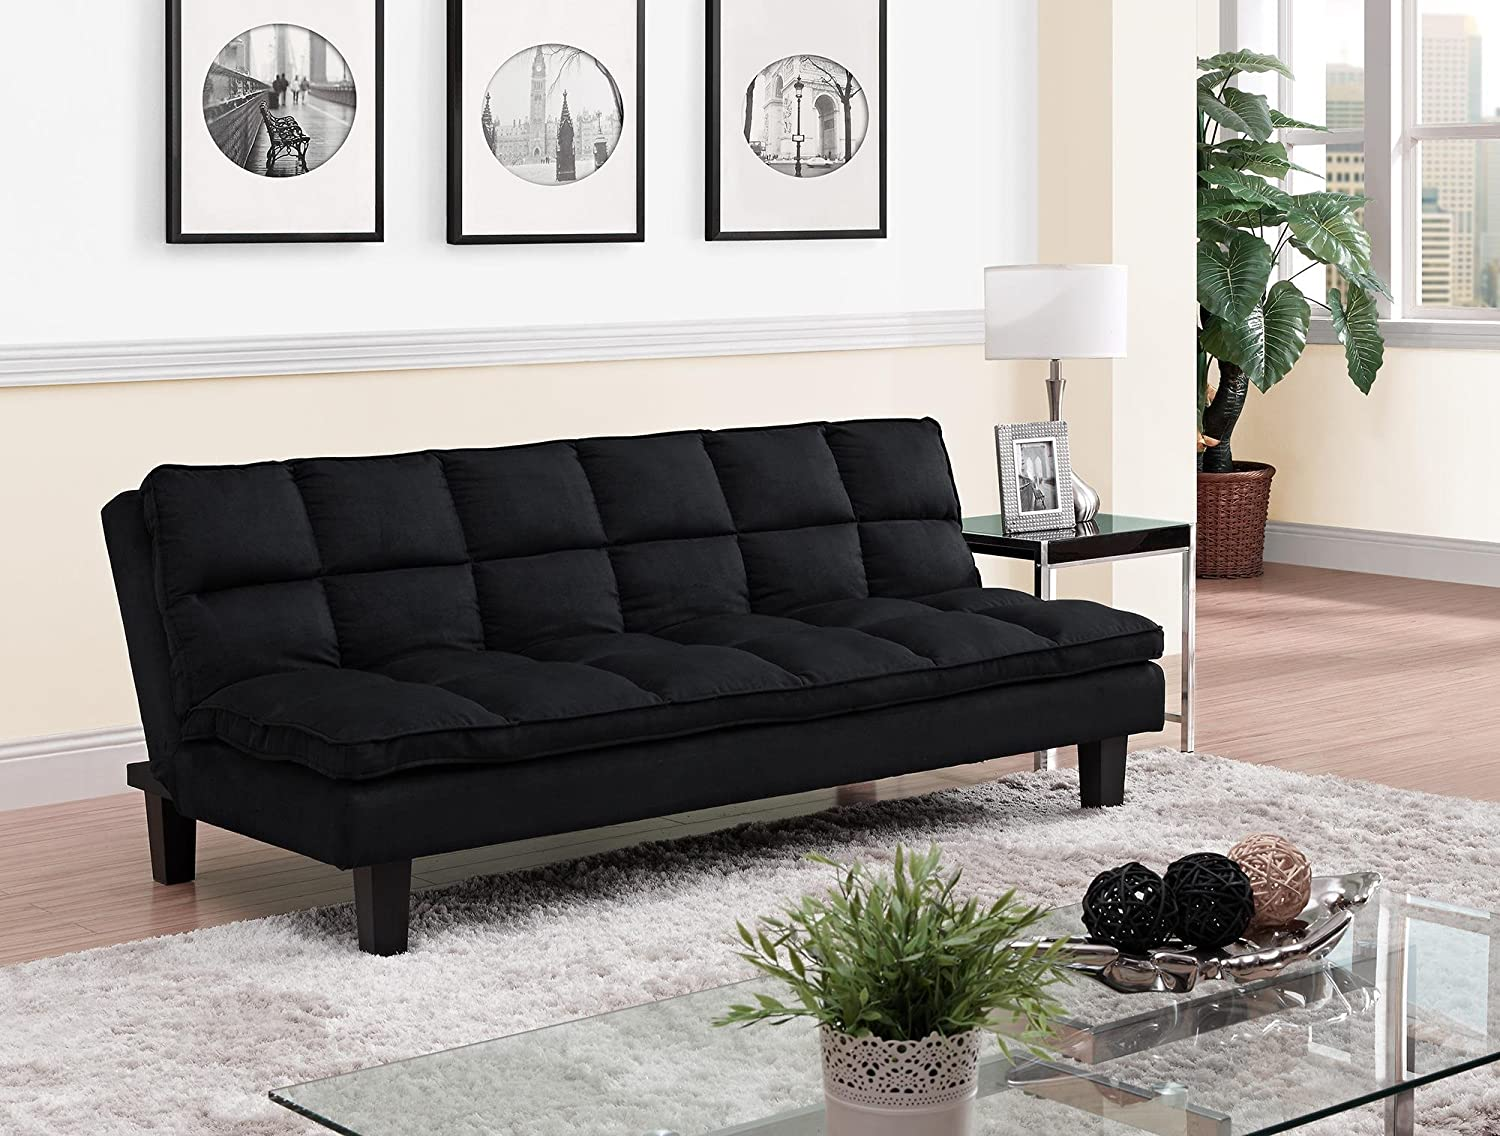 Double Futon Mattress Amazon. DHP Allegra Pillow Top Futon, Black